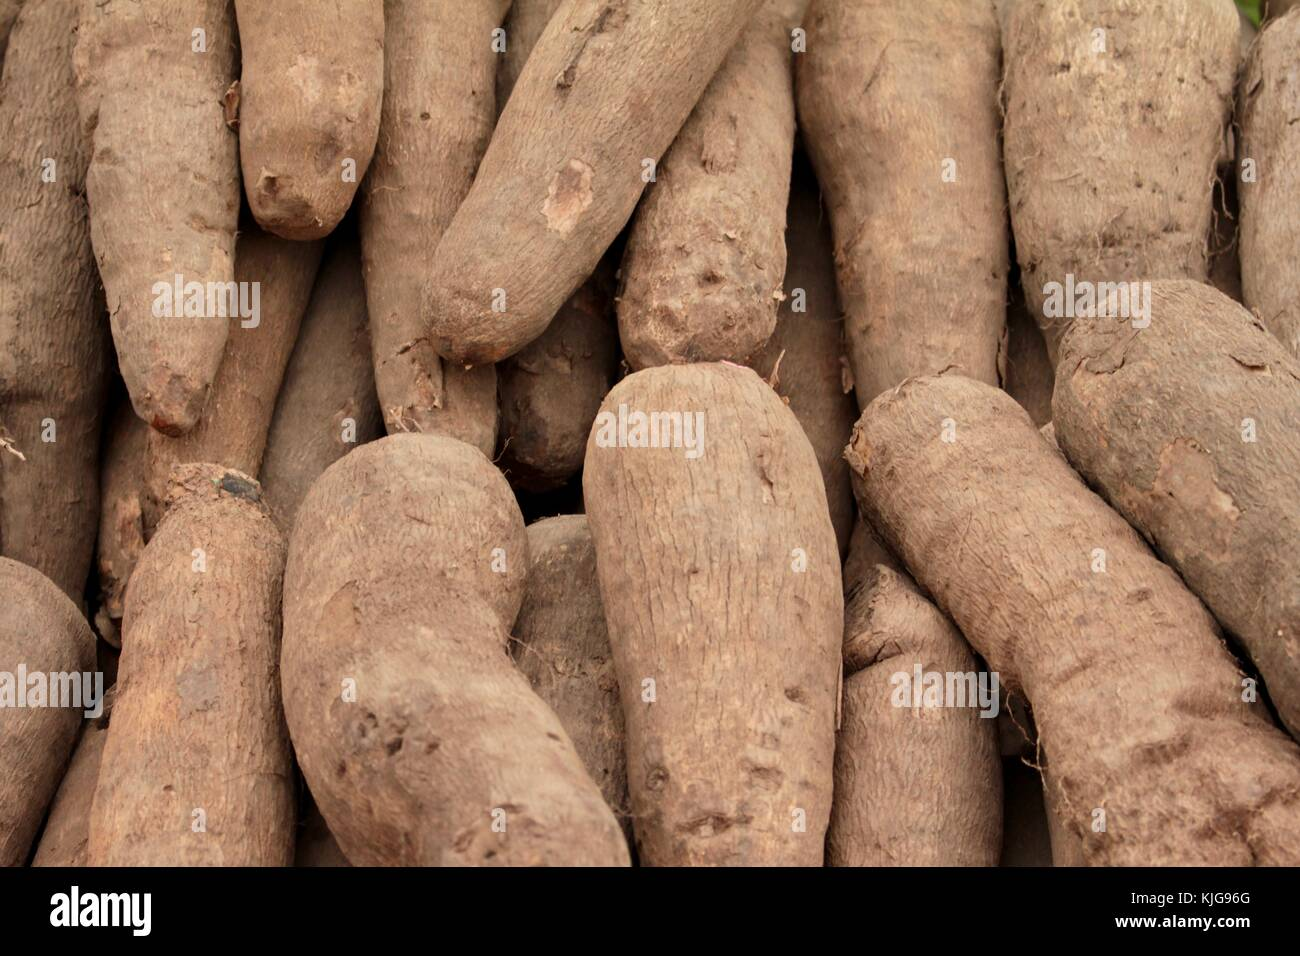 Close up on sweet potatoes on a market stall in London filling the frame - Stock Image